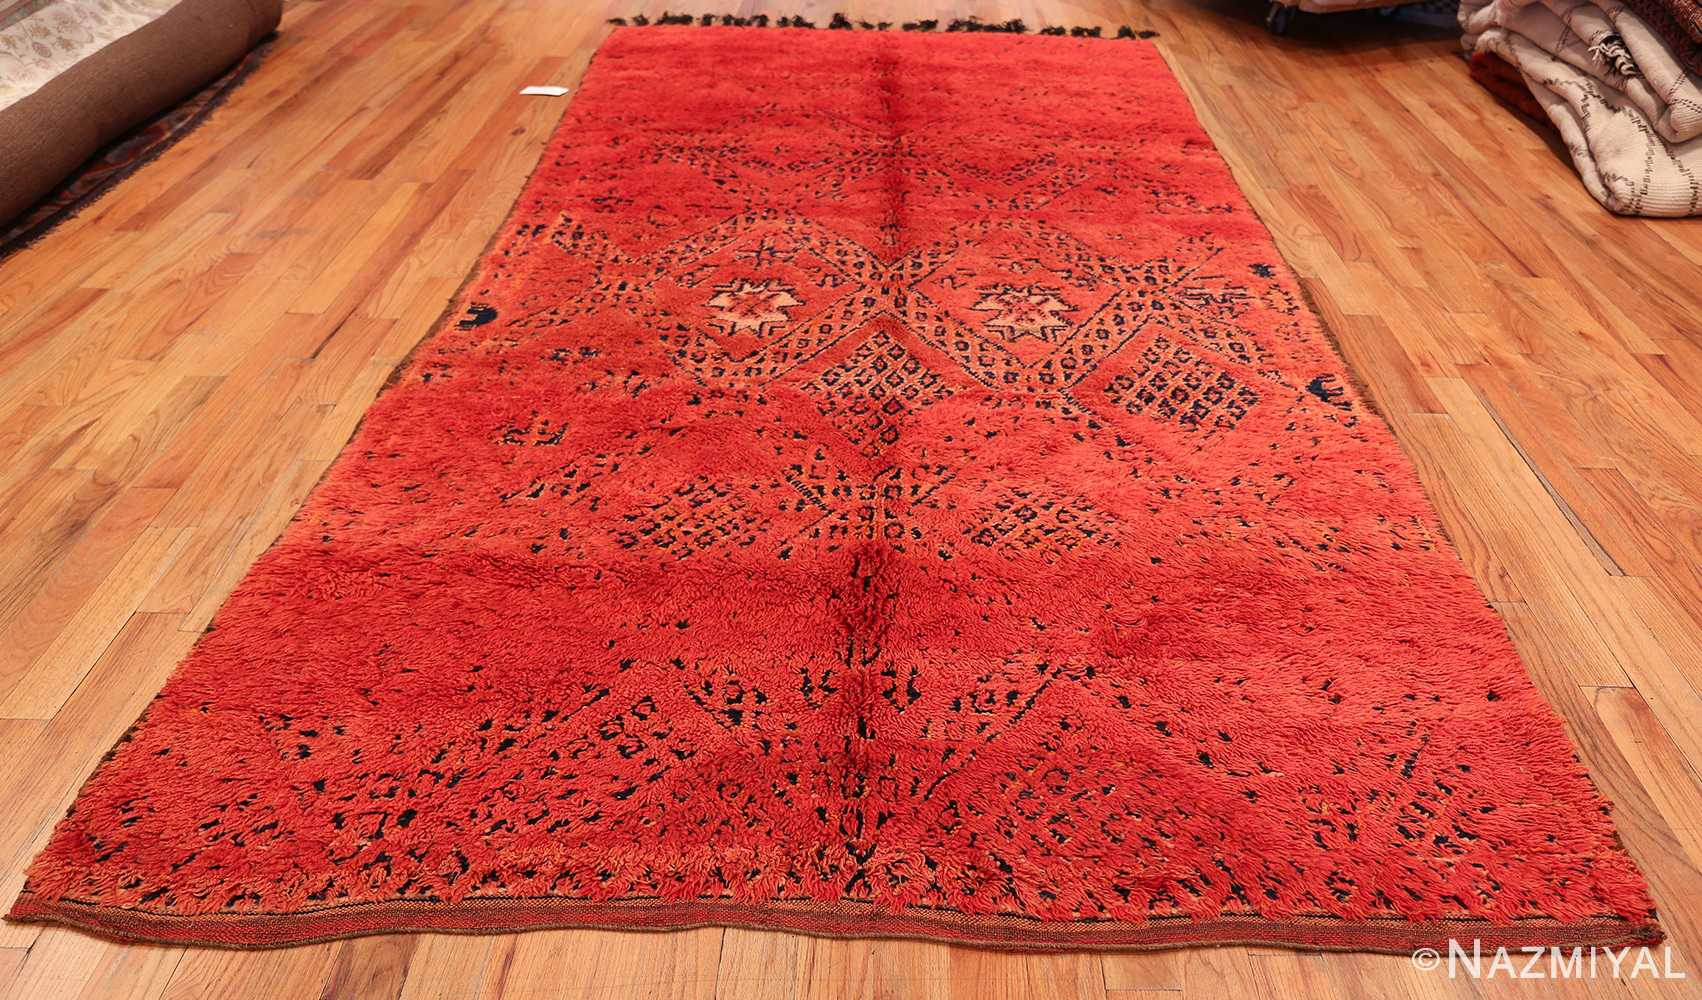 Vintage Room Size Double Sided Moroccan Rug 49880 Whole Design Nazmiyal